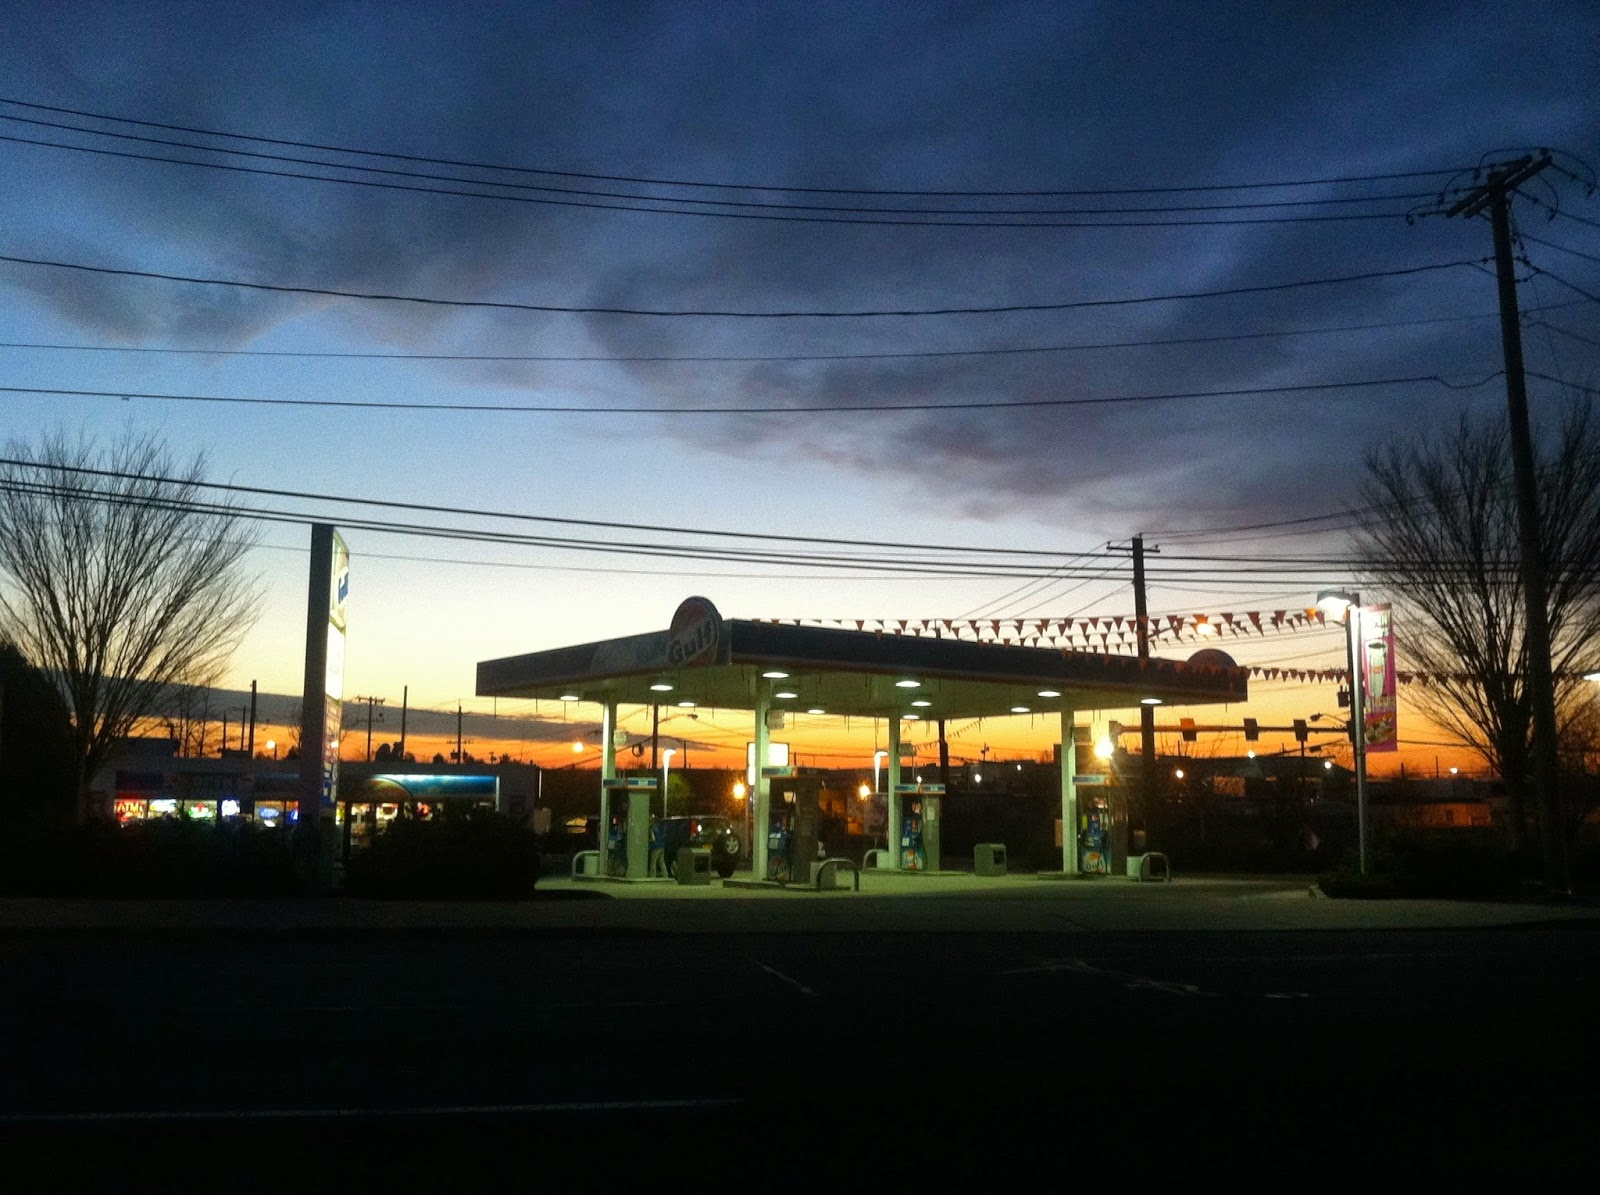 Sunset-Over-Gulf-Station-in-Farmingdale